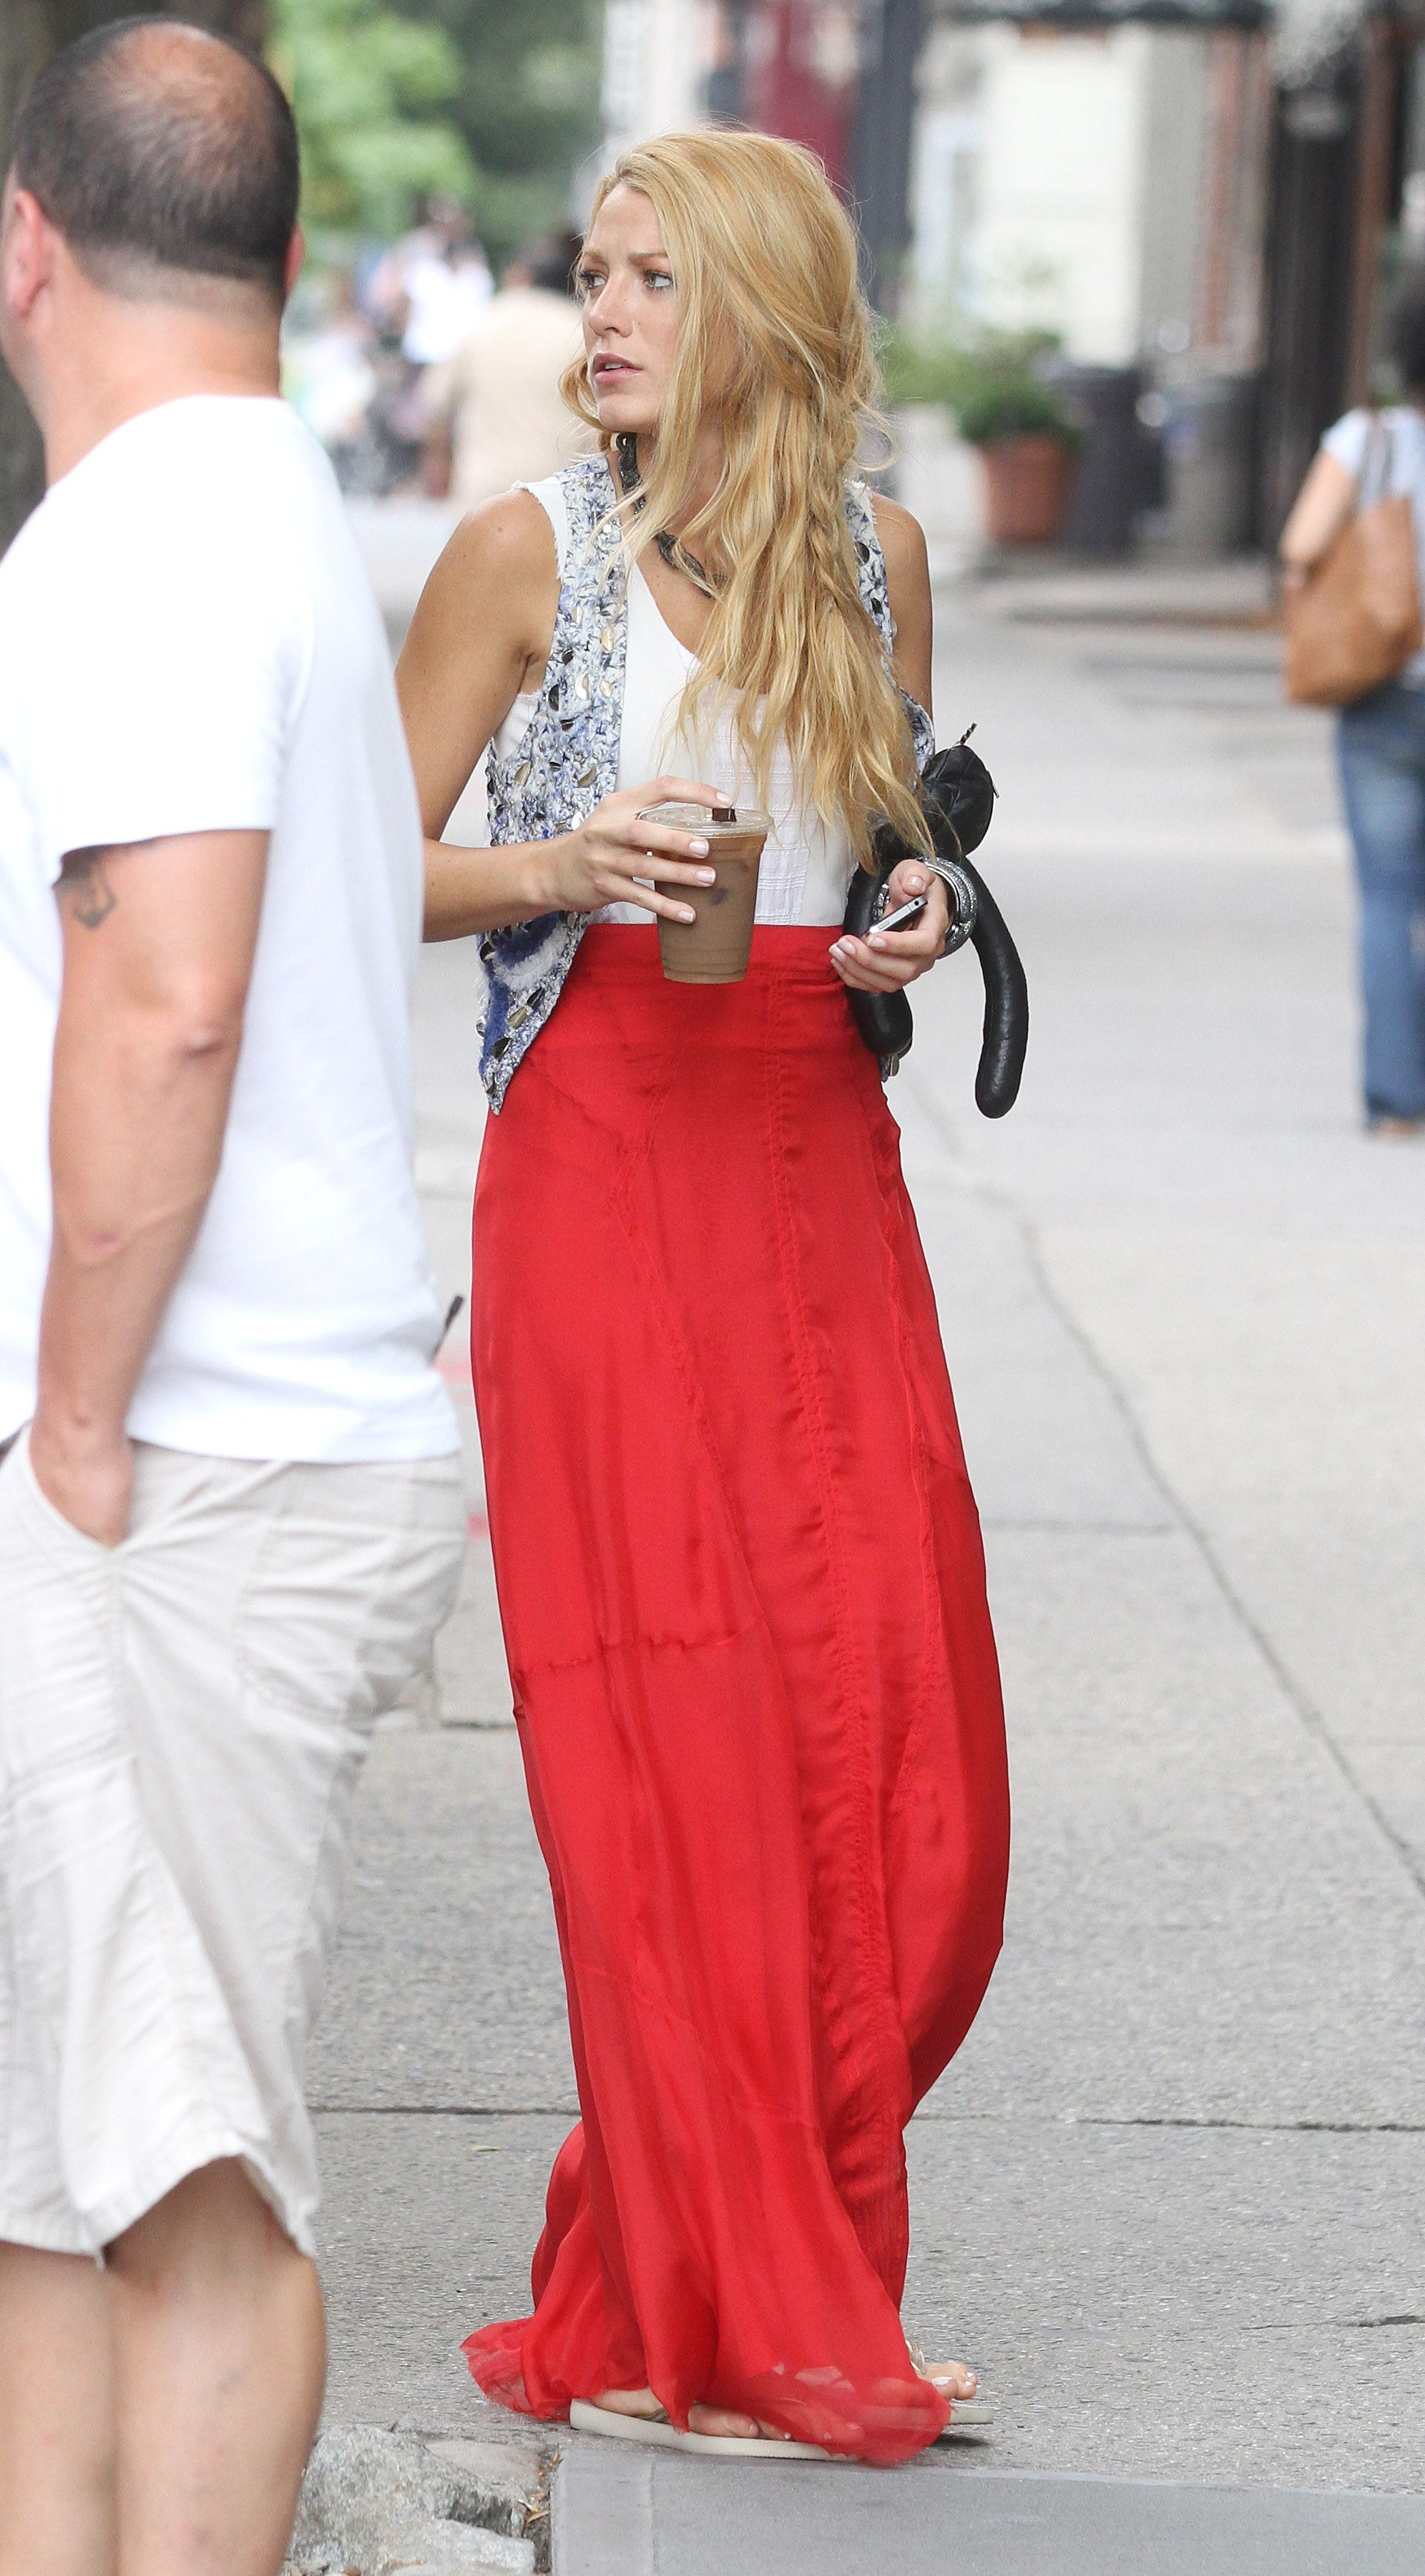 Perfect red skirt styled with vest and a beautiful hair style